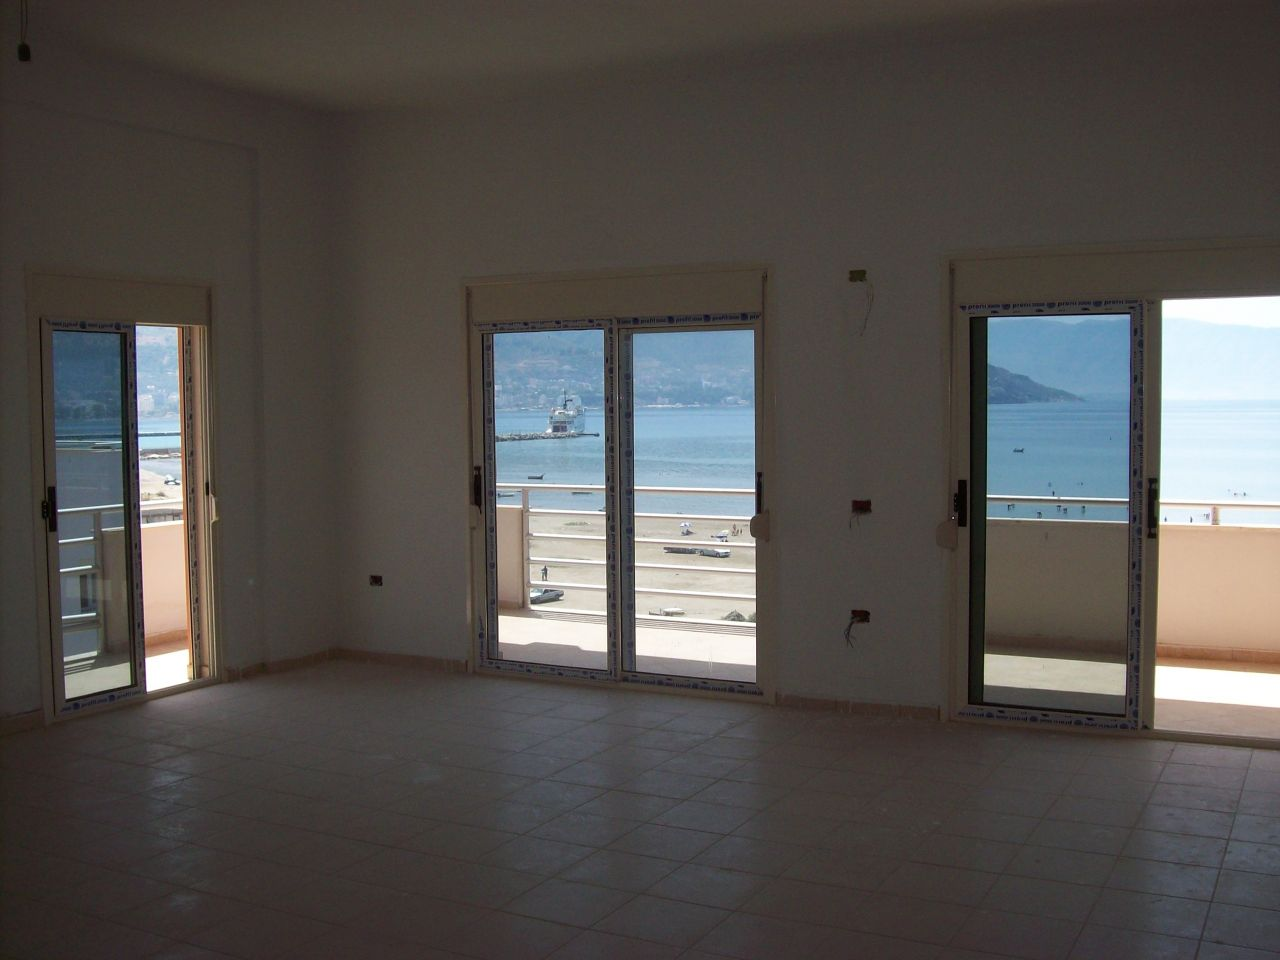 Apartment for Sale in Vlora, in a great location near the beach offered by Albania Property Group